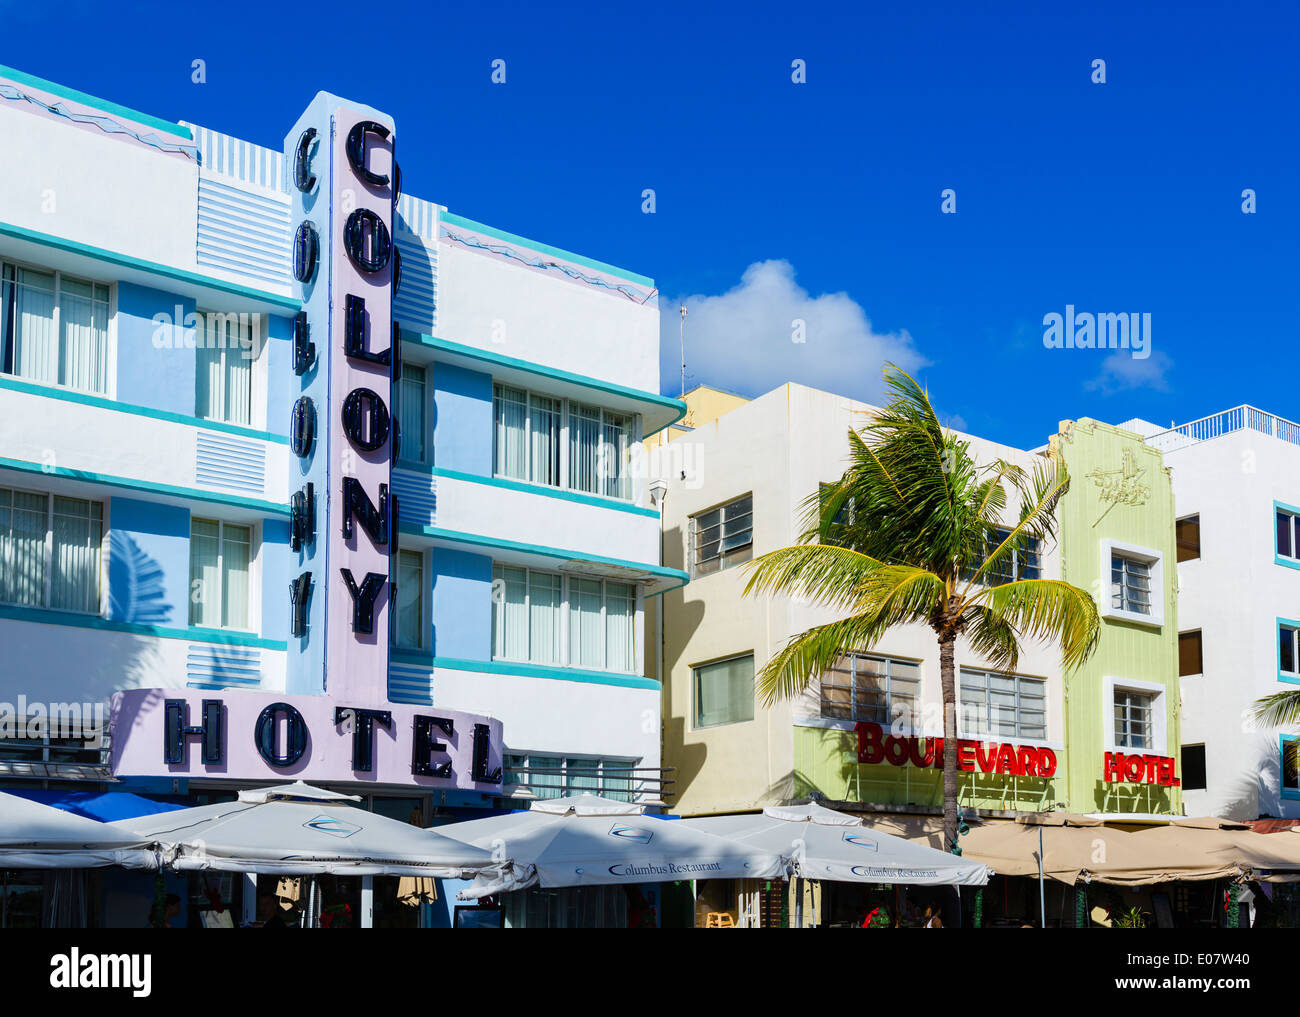 Art deco hotels on Ocean Drive, South Beach, Miami Beach, Florida, USA - Stock Image